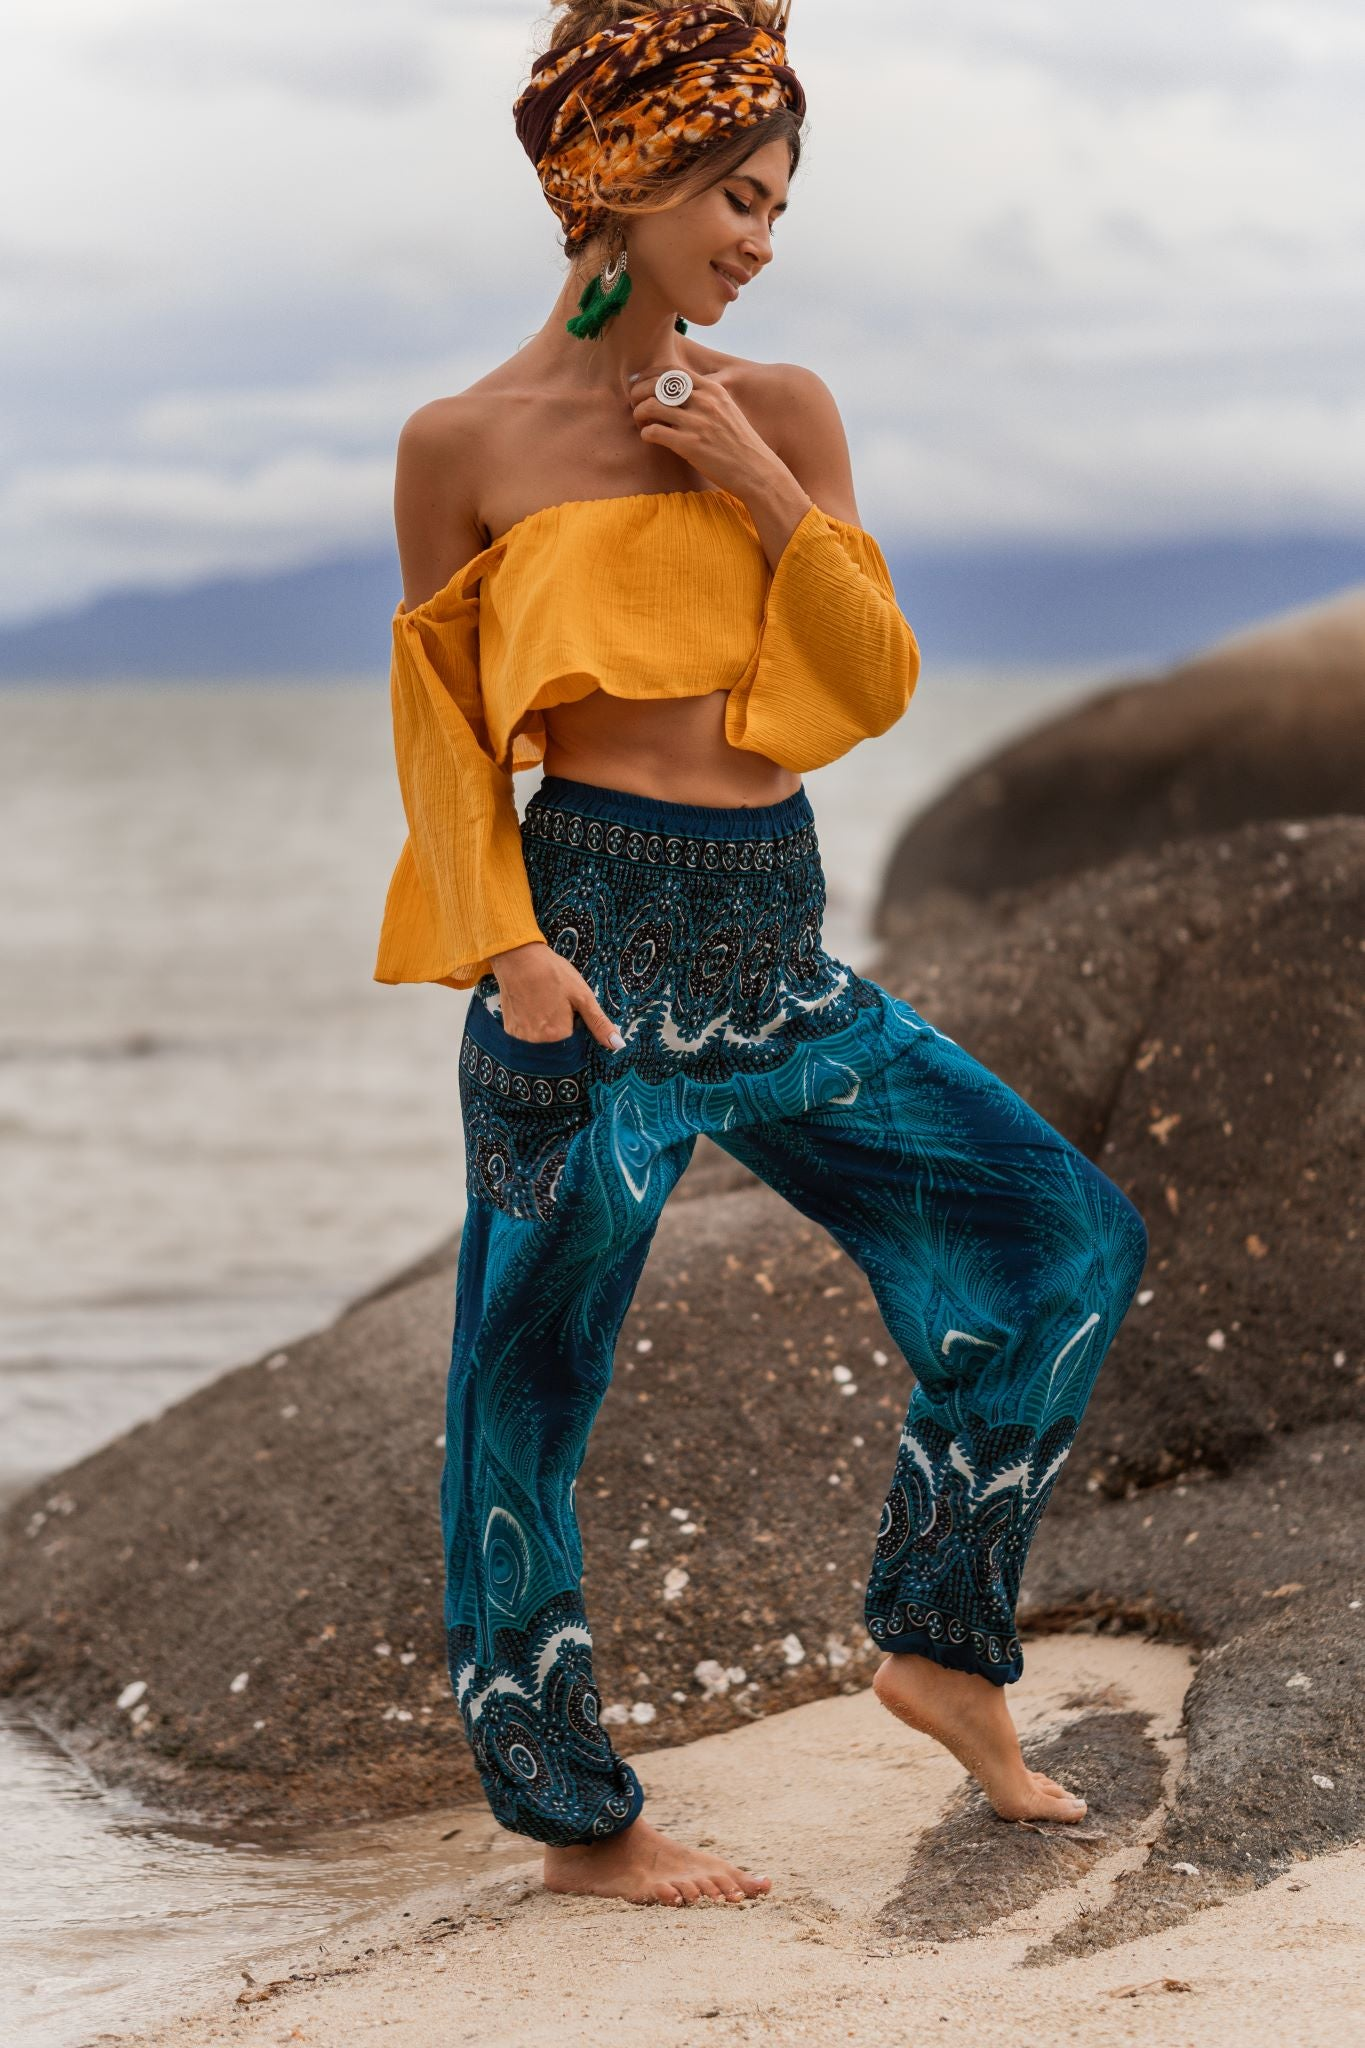 High Cut Harem Pants - Vibrant Peacock Feather Print - Sea Green